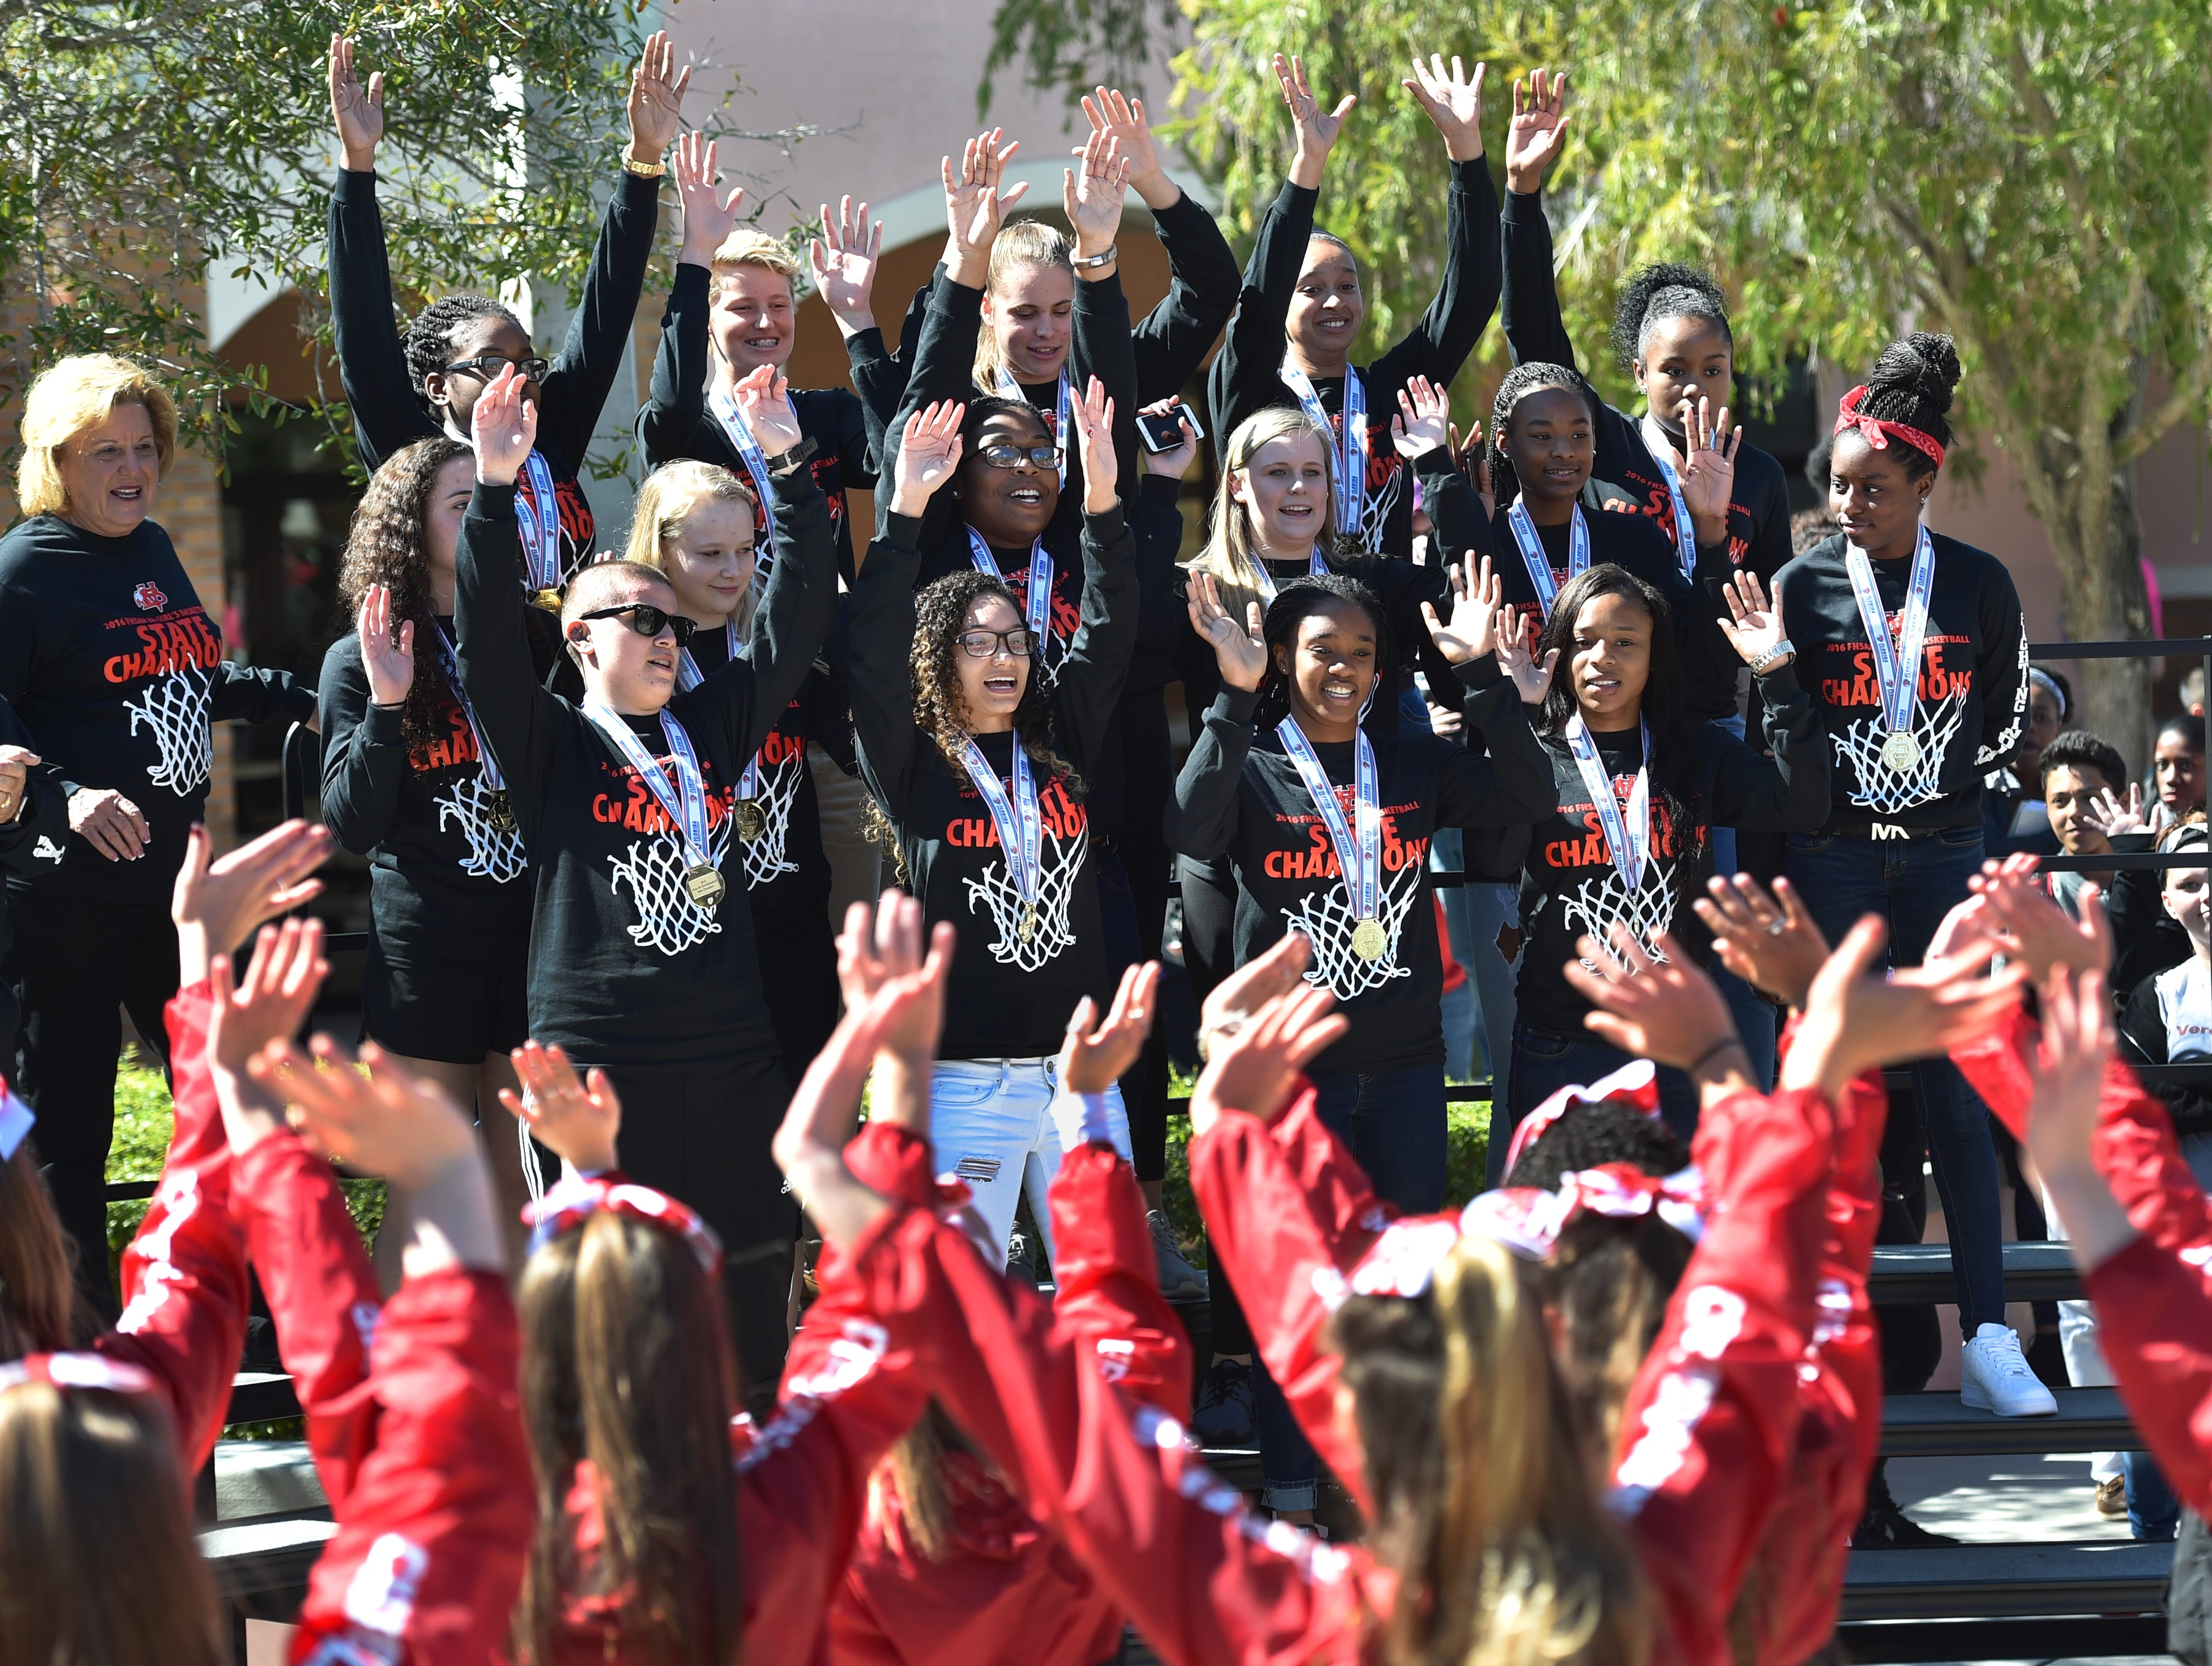 """It's fantastic, to have the school come out and support us like this and show their love, what better thing can you ask for, this is what Vero Beach High School is all about,"" said Rahshard Morgan, Vero Beach High School girls basketball head coach, as his team (top) celebrates with cheerleaders, band, and students during a brief pep rally honoring their winning the Florida High School Athletic Association class 8A Girls Basketball State Championship. The team beat Boca Raton to win the championship 77-68 after two overtimes, school Principal Shawn O'Keefe said. ""After 41 years of girls basketball, this is the first state championship."" To see more photos, go to TCPalm.com. (ERIC HASERT/TREASURE COAST NEWSPAPERS)   Rahshard Morgan, cq Shawn O'Keefe, cq PHOTOGRAPHED: Thursday FEBRUARY 25, 2016"